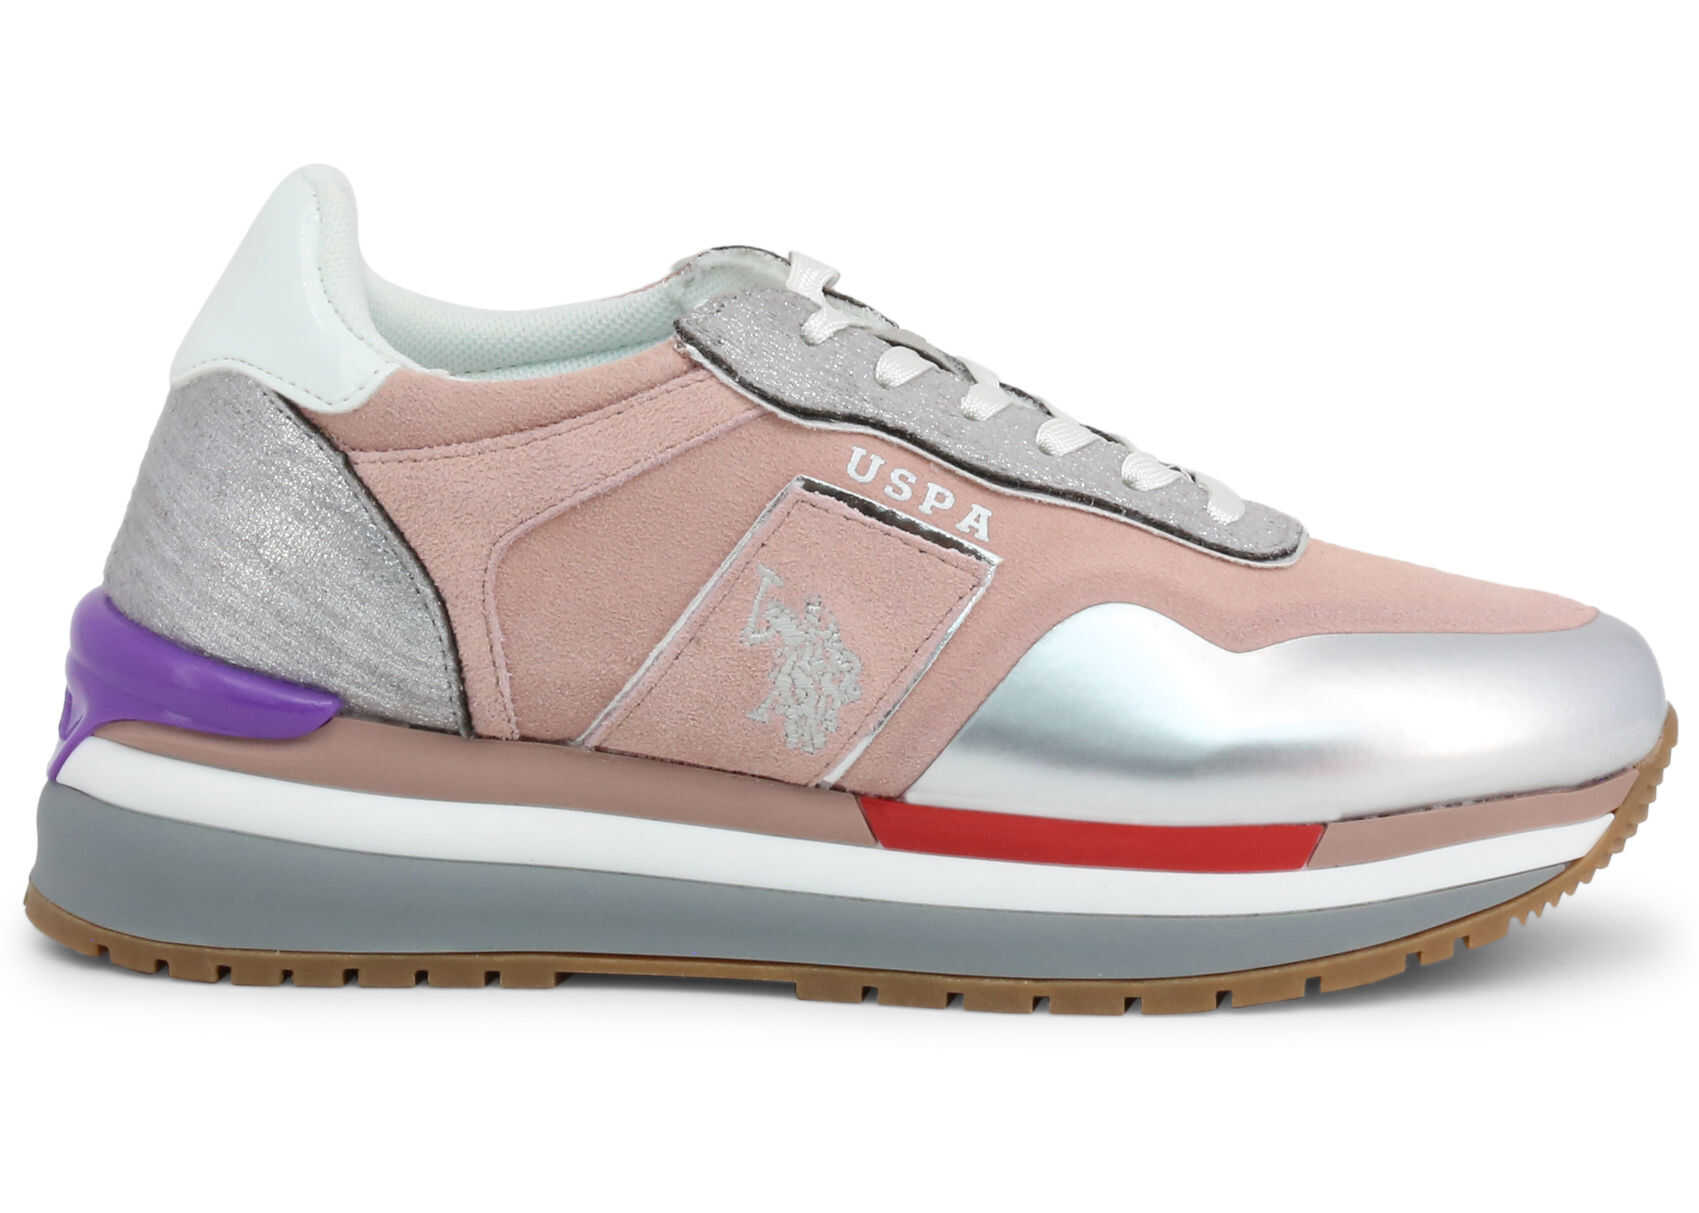 U.S. POLO ASSN. Cher4195S0_Sy1 PINK imagine b-mall.ro